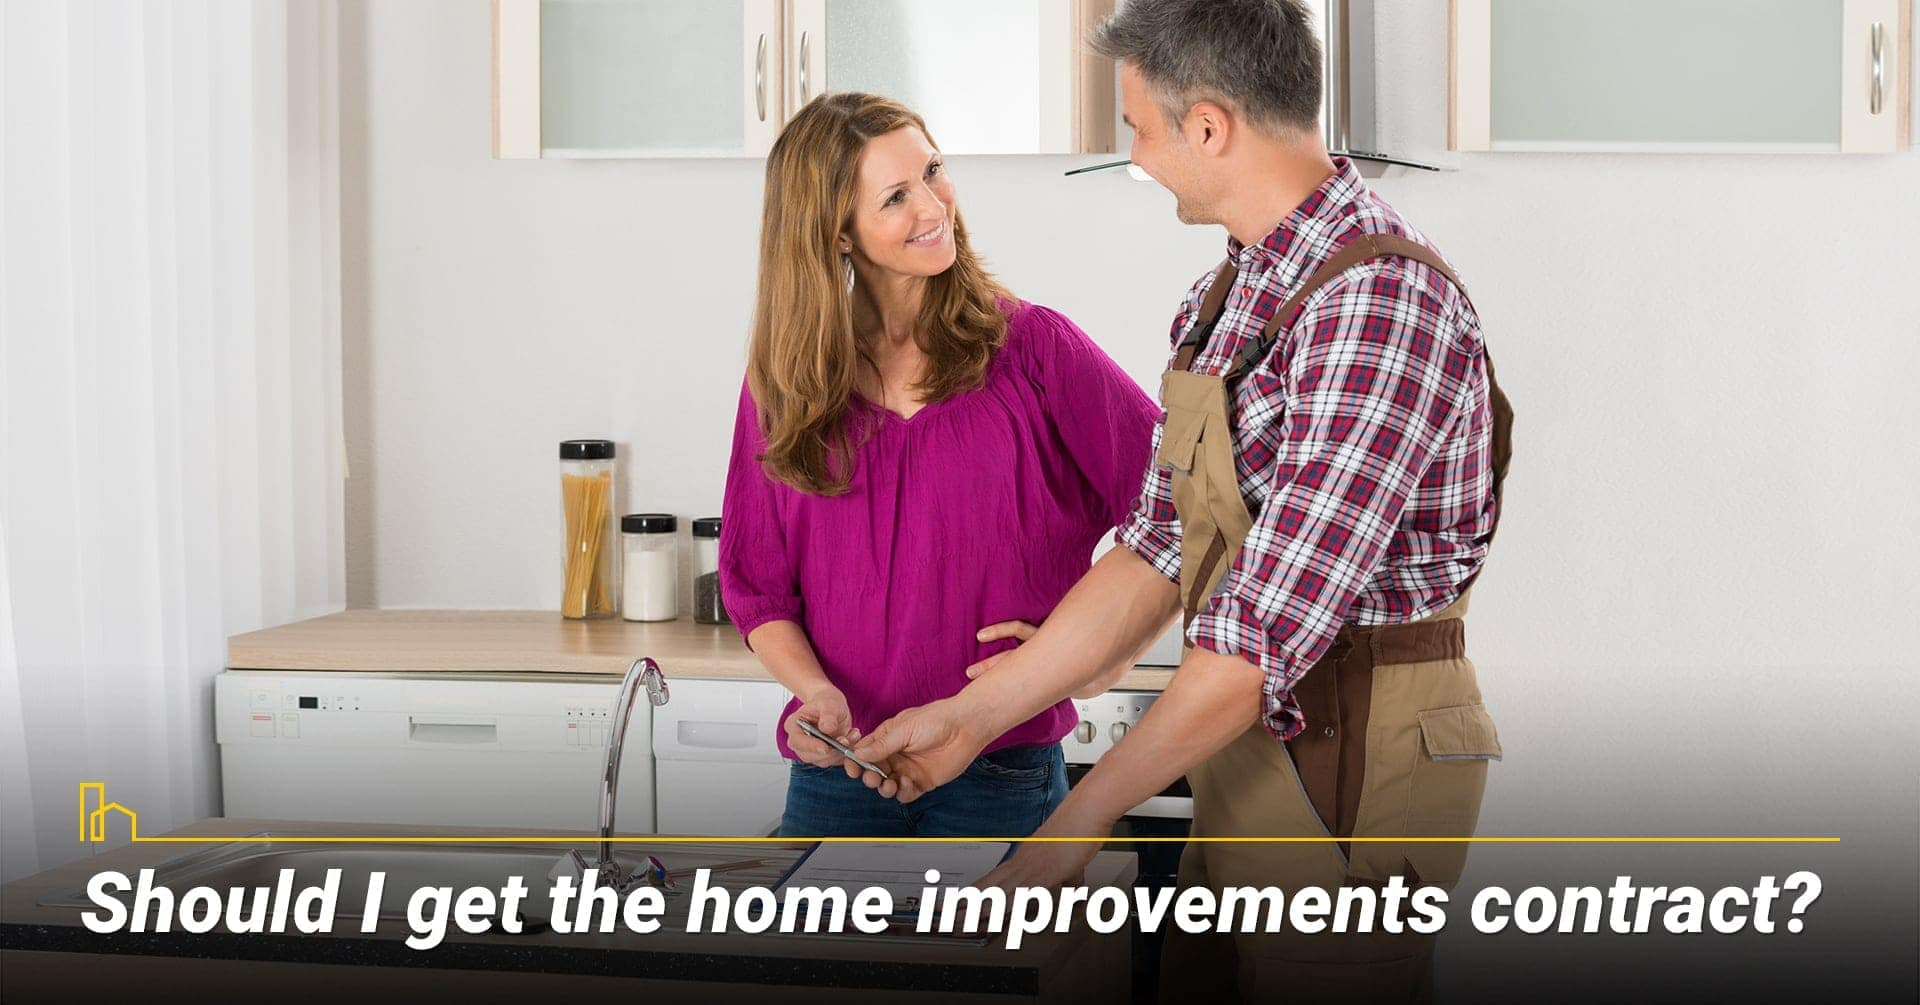 Should I get the home improvements contract? May need contract for certain projects